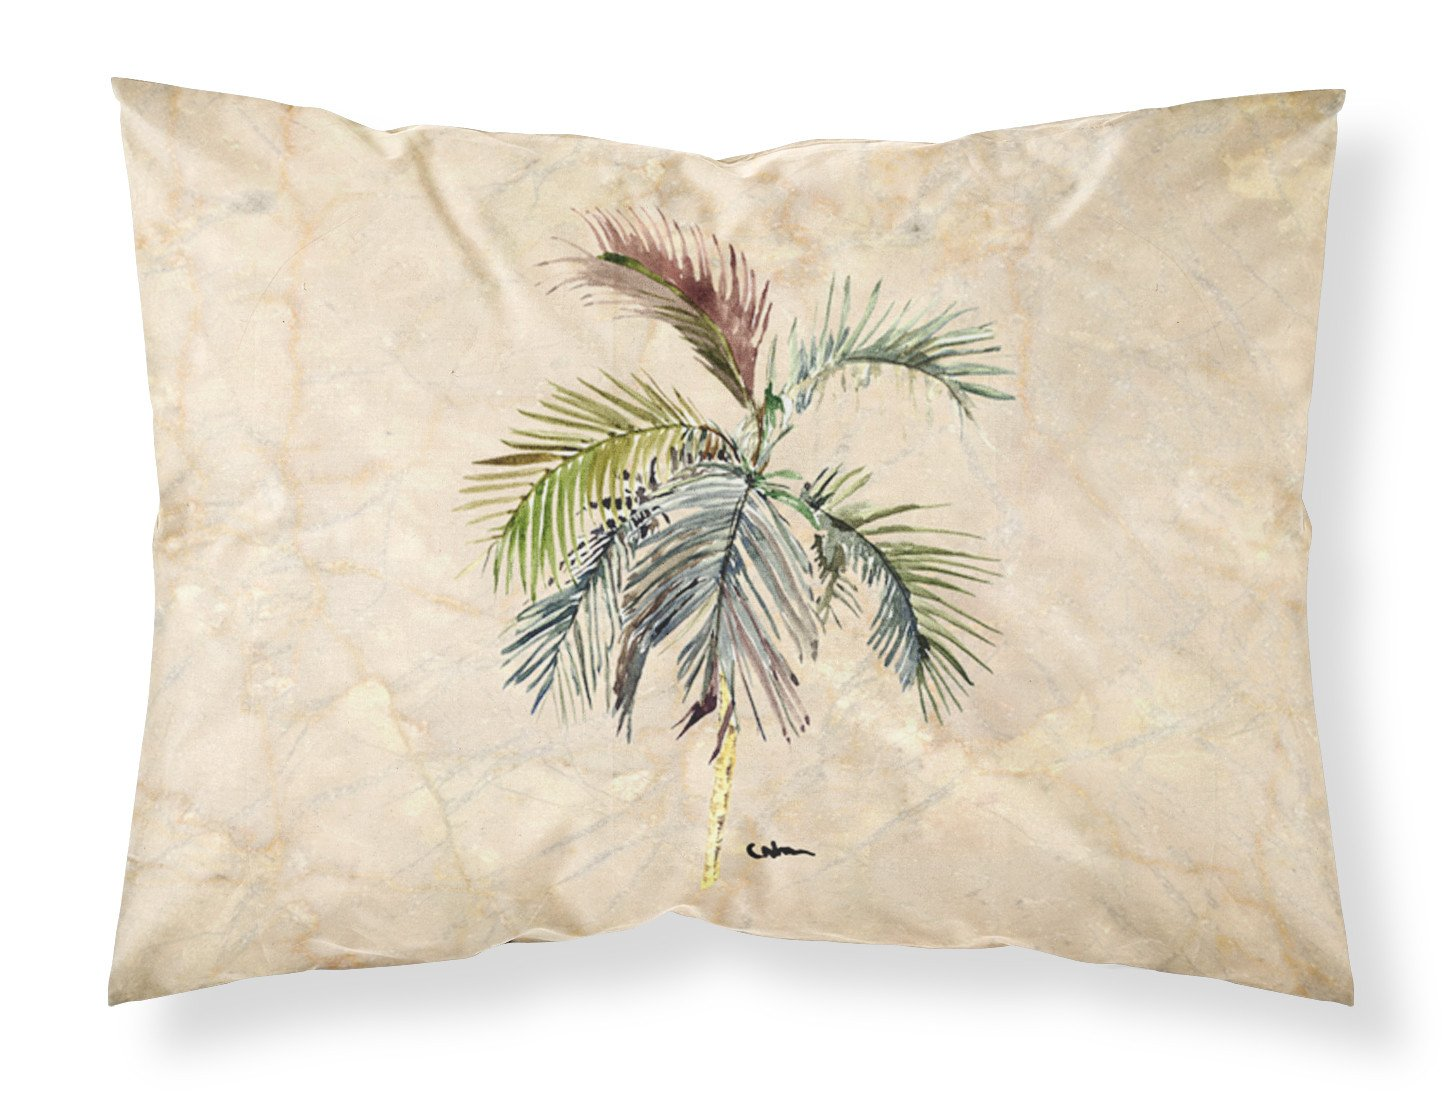 Palm Tree Moisture wicking Fabric standard pillowcase by Caroline's Treasures